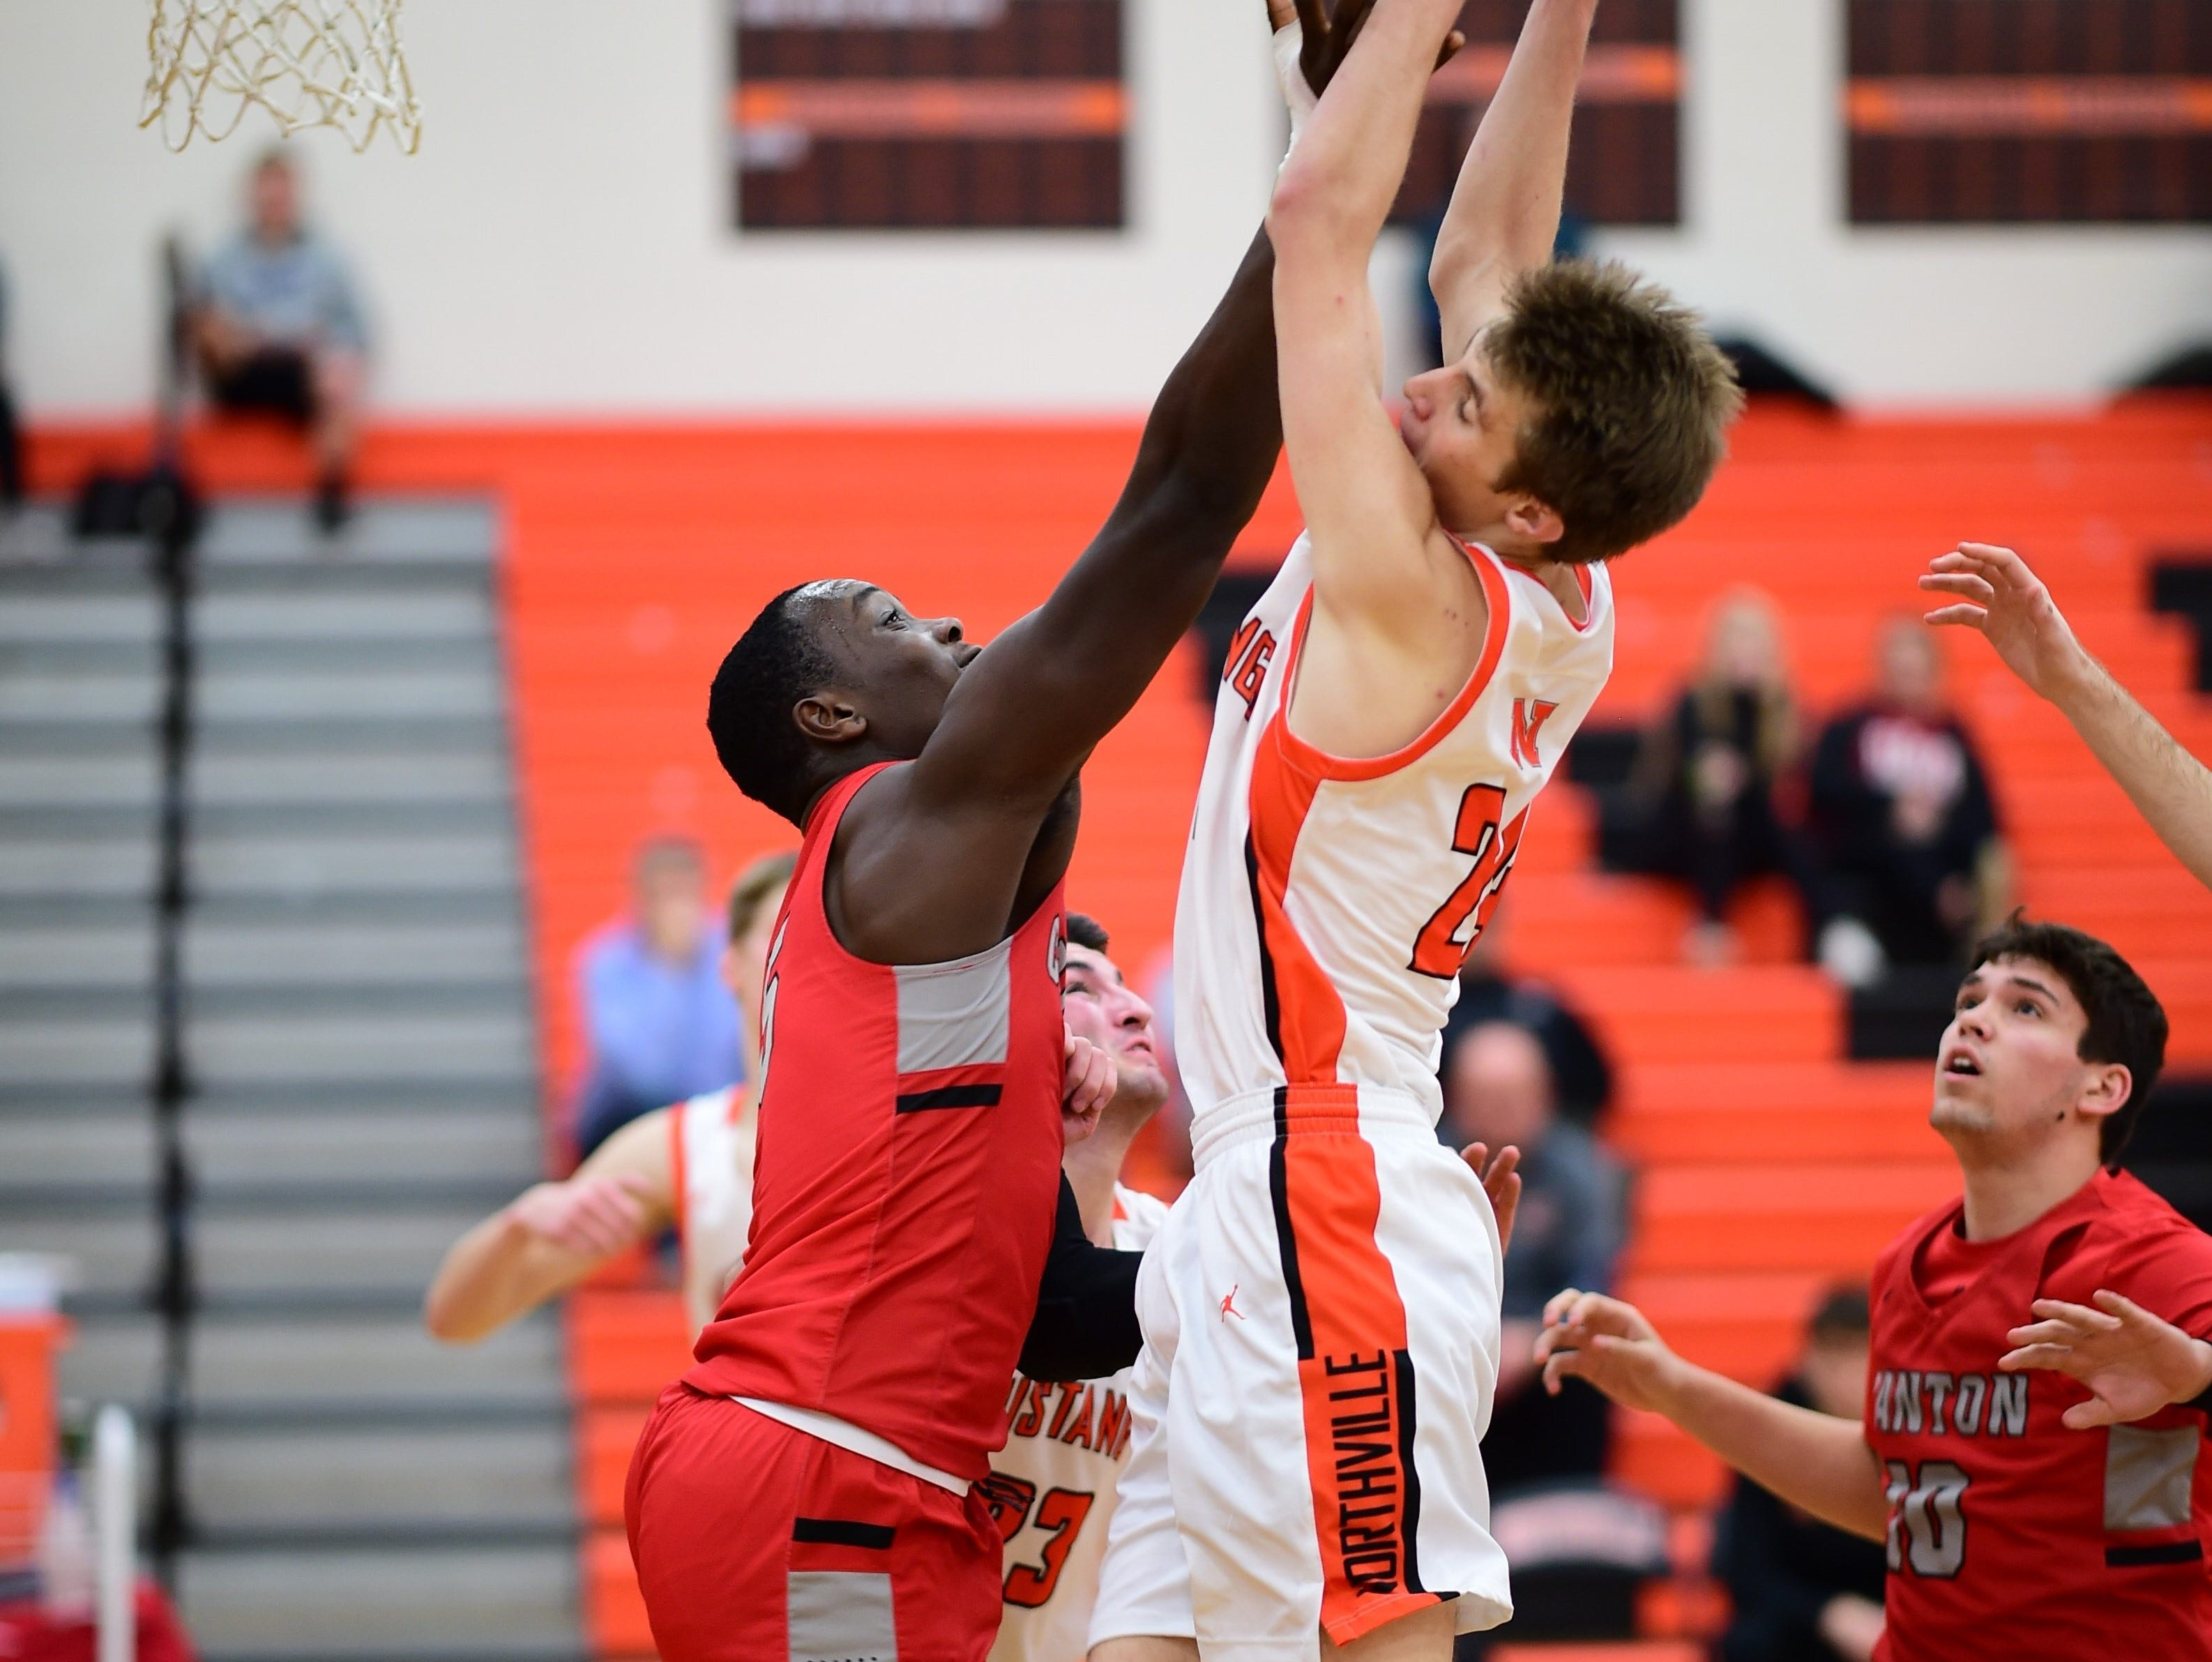 Canton senior big man Darius Robinson (left), who the previous day signed his national letter of intent to play Division I football at Missouri, shows some physicality on the basketball court against Northville.